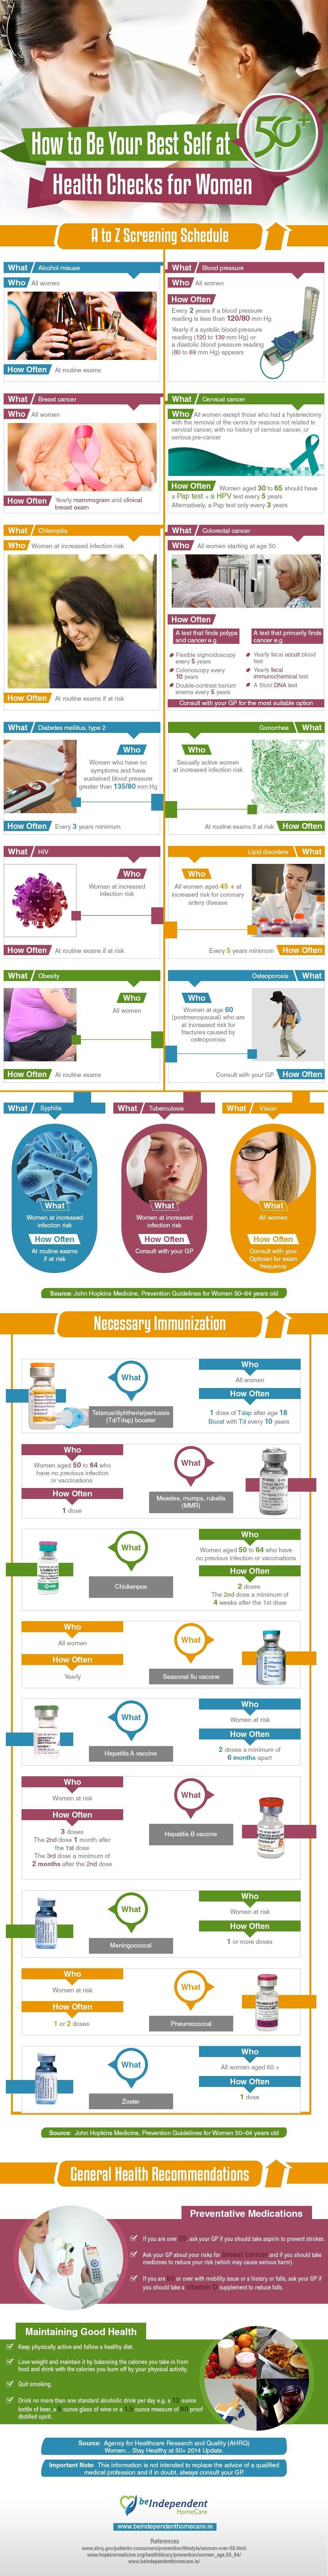 Women's Health in One Important Infographic Health